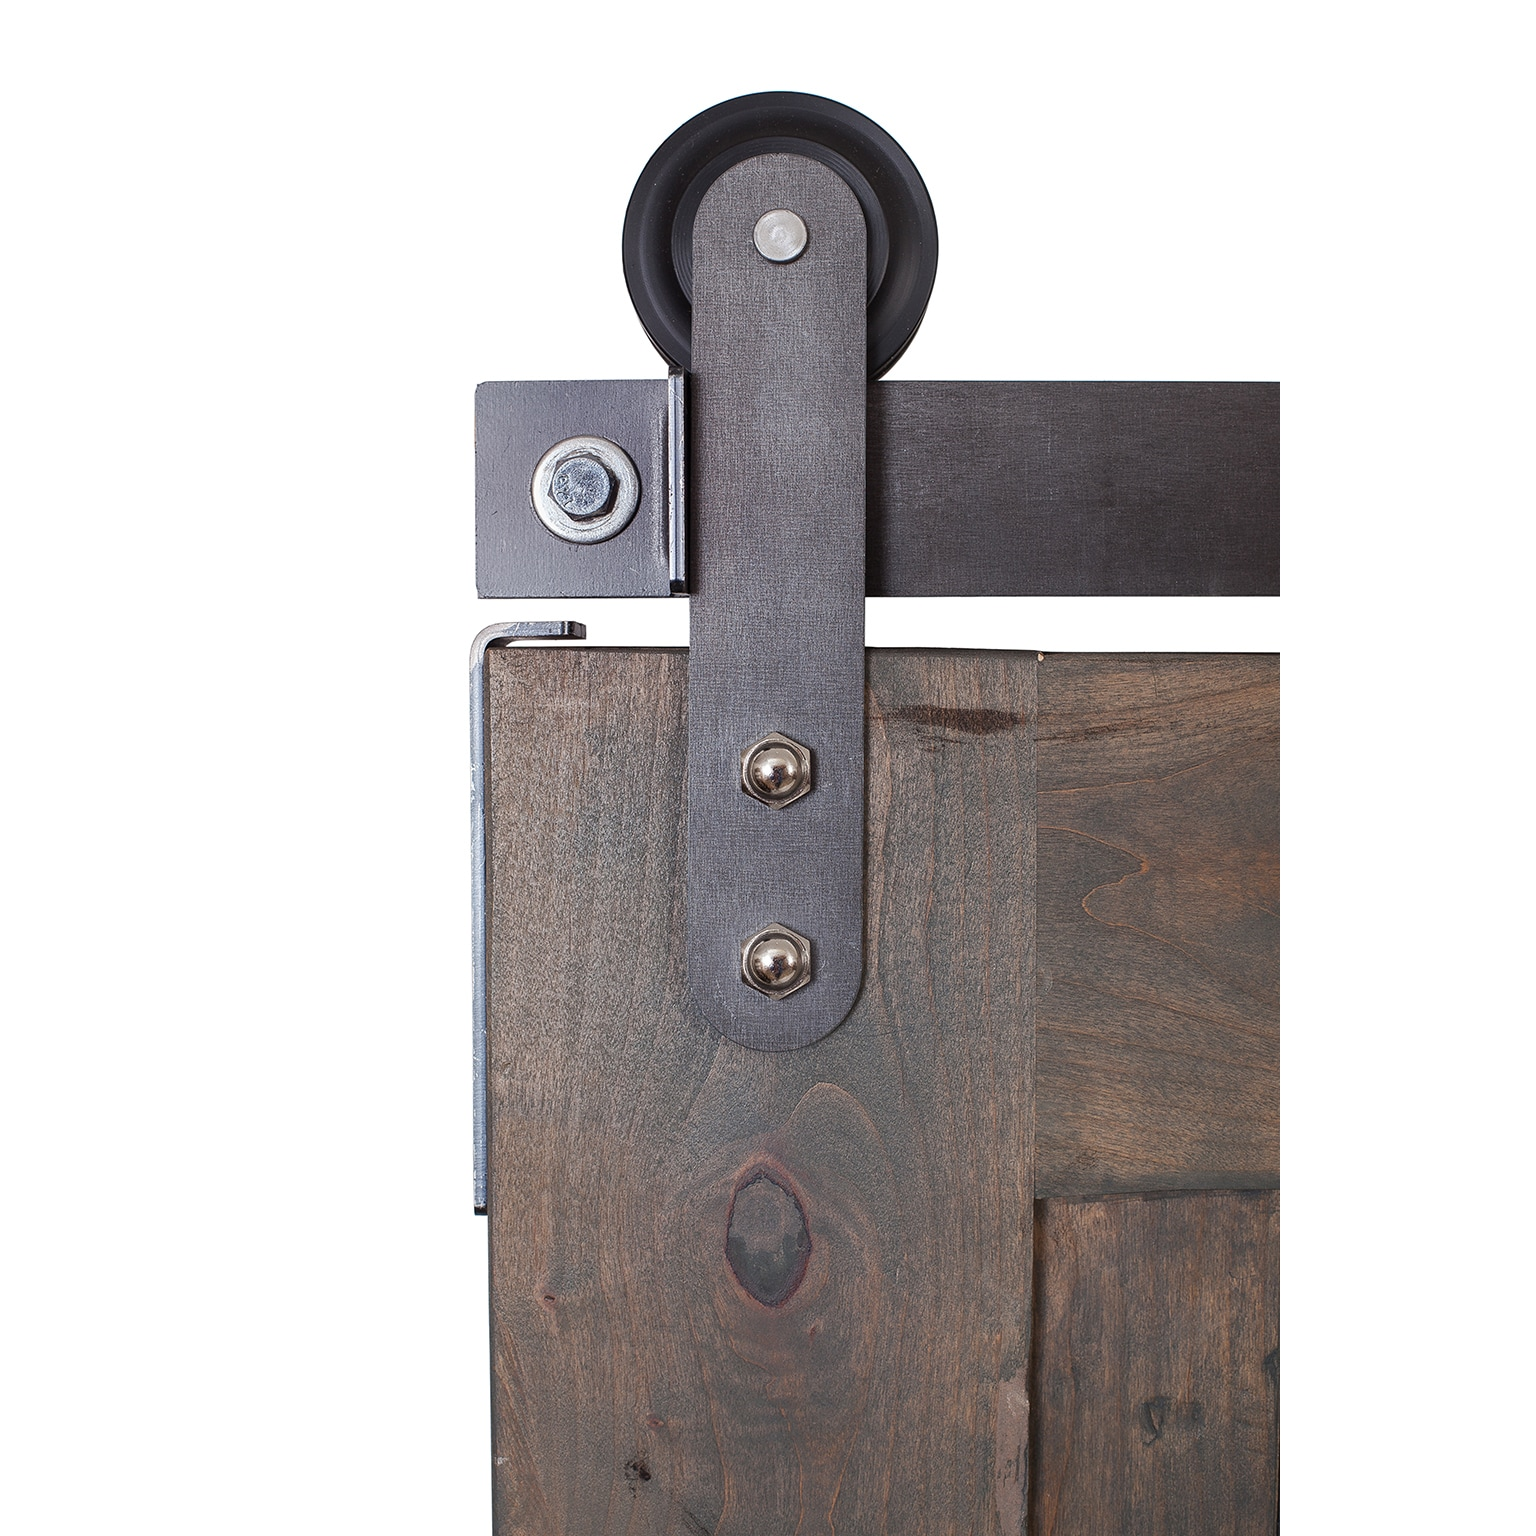 Ironwood Hardware Z-Barn Unassembled Door with Raw Steel Hardware - Free Shipping Today - Overstock - 20123129  sc 1 st  Overstock.com & Ironwood Hardware Z-Barn Unassembled Door with Raw Steel Hardware ...